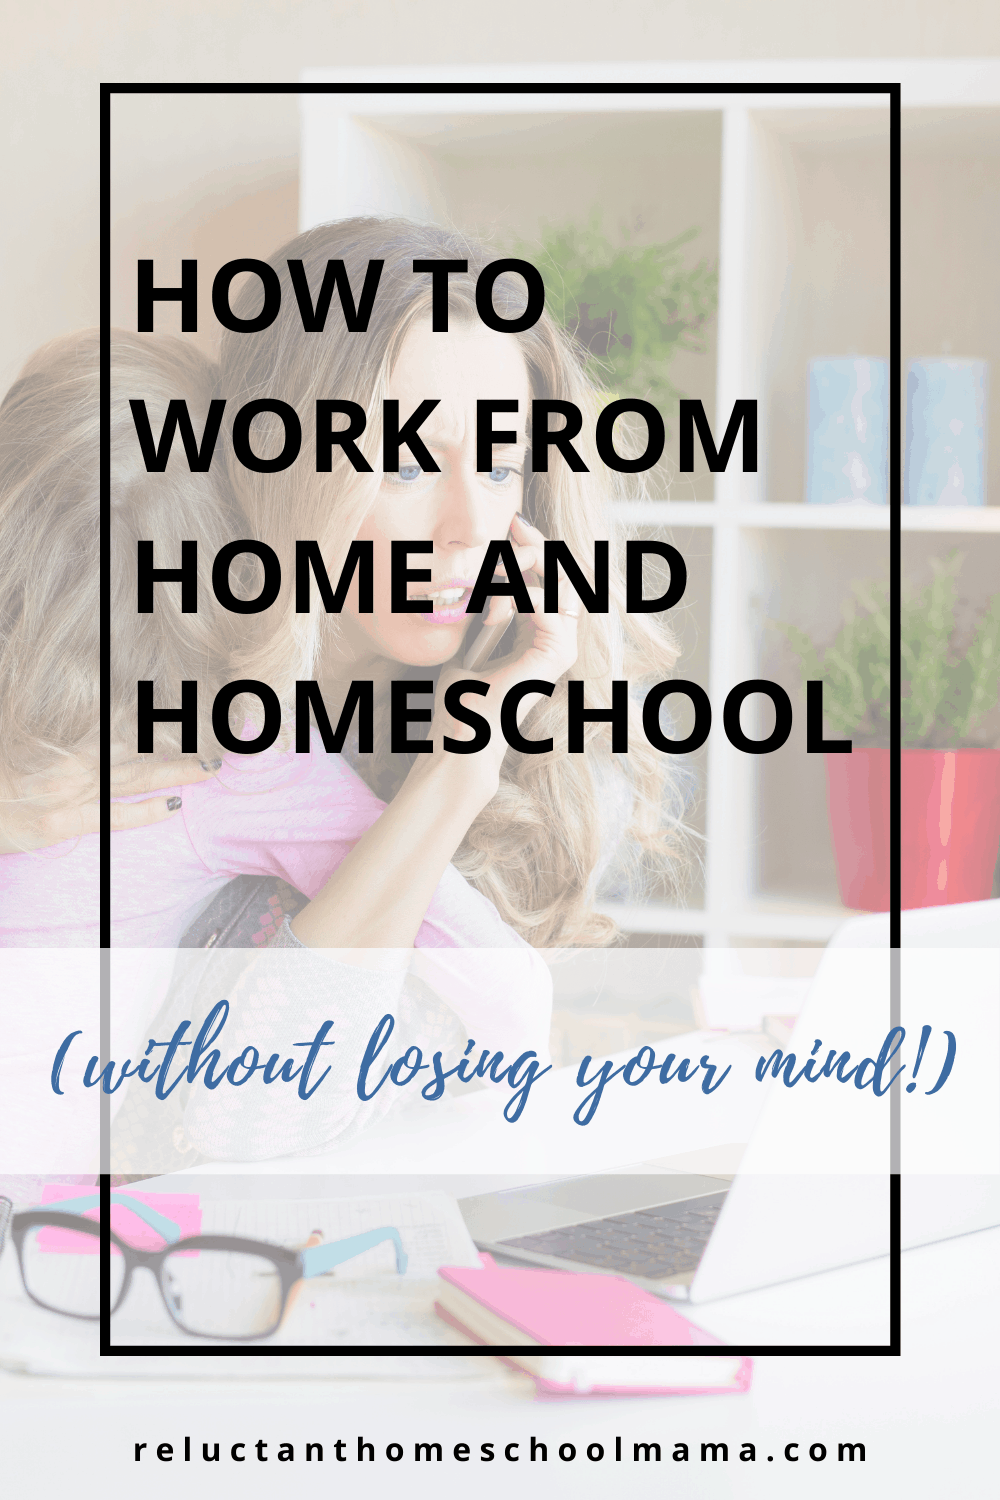 How to Work from Home and Homeschool (Successfully)